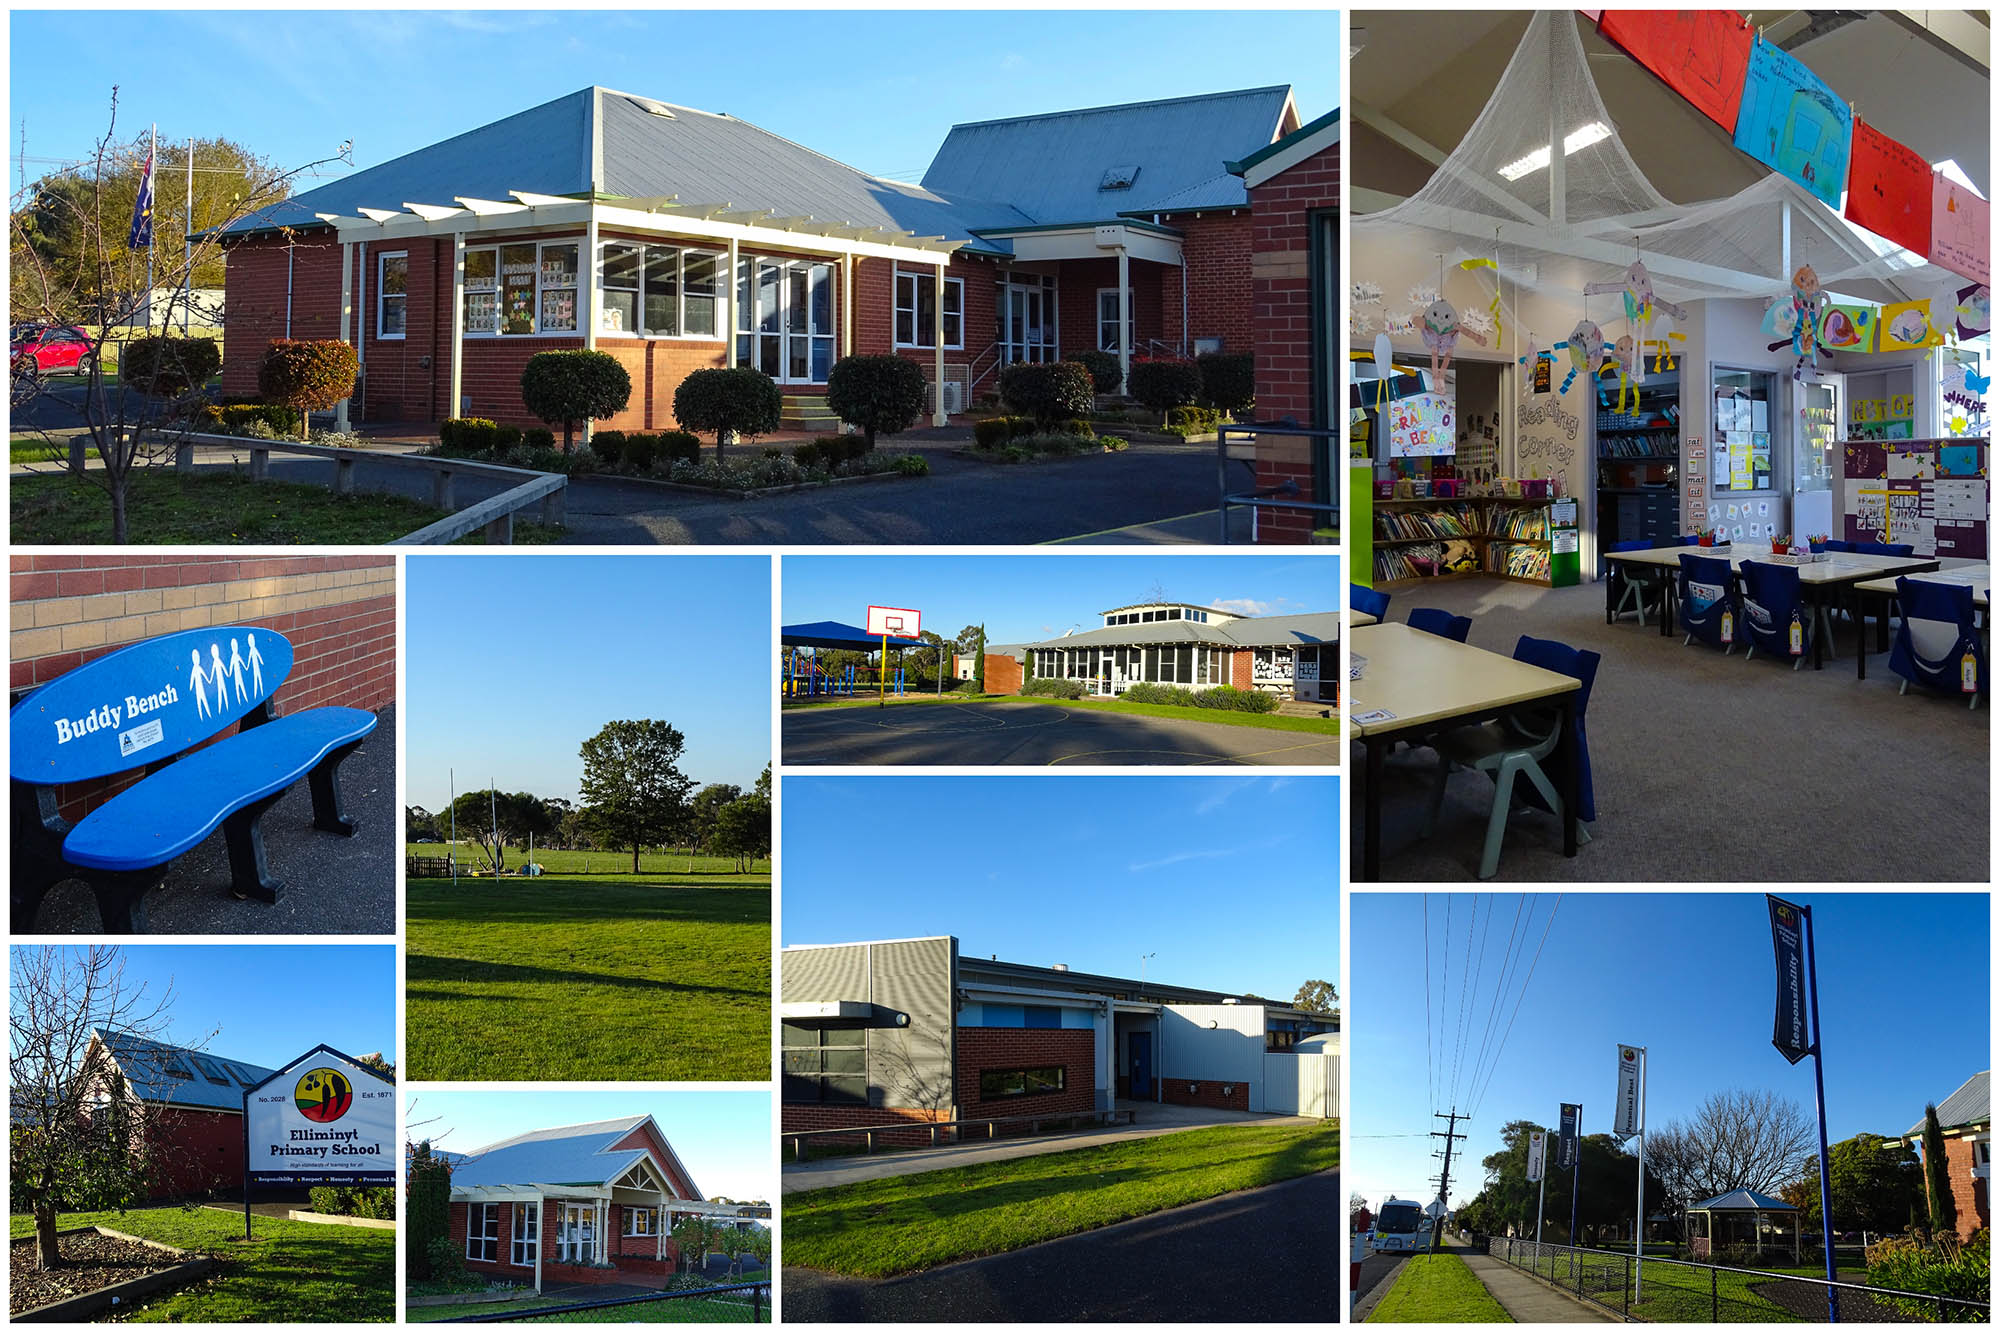 Ellimiyt Primary School Grounds Collage